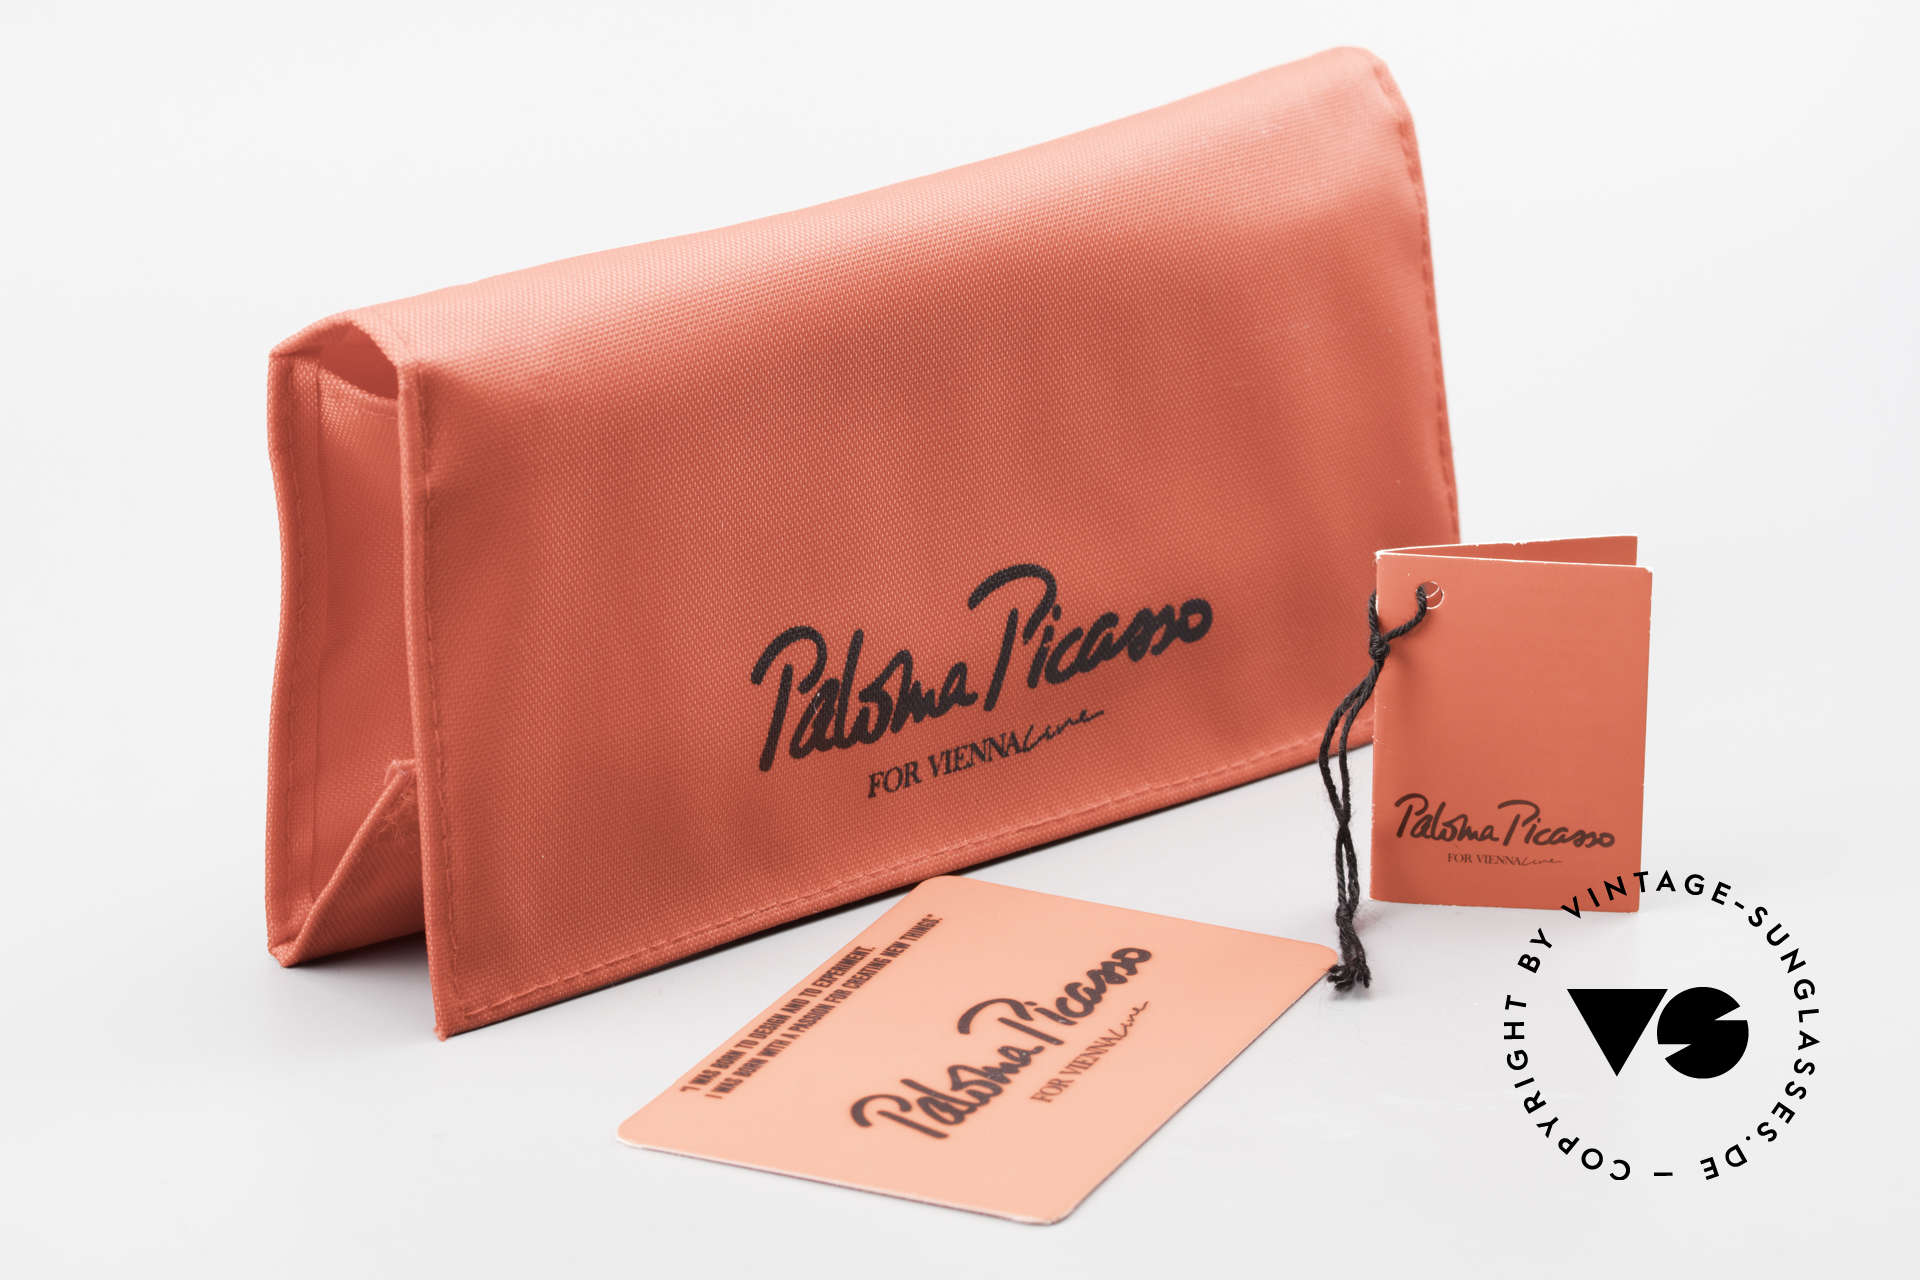 Paloma Picasso 3702 No Retro Sunglasses From 1990, Size: medium, Made for Women